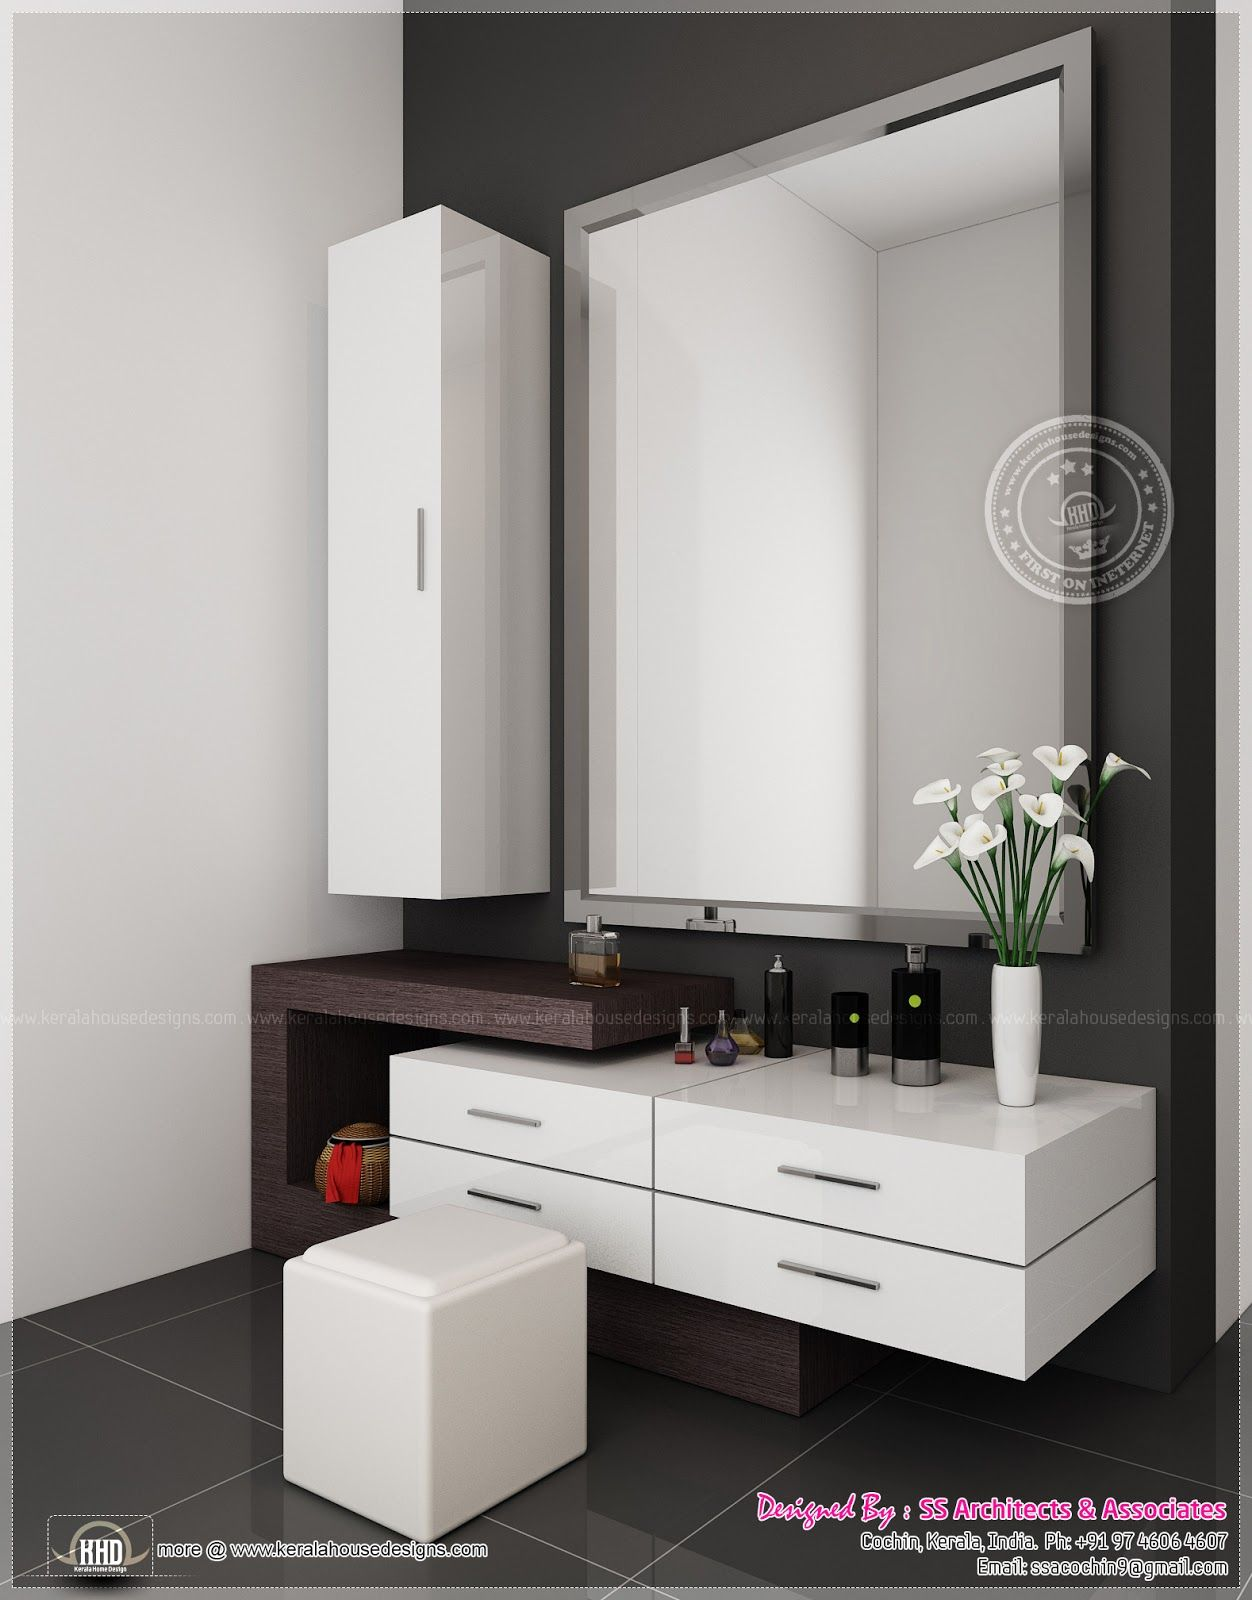 Dressing table designs - Cool Dressing Table Design Designs Small For Bedroom With Almirah Simple Full Length Mirror In Wood